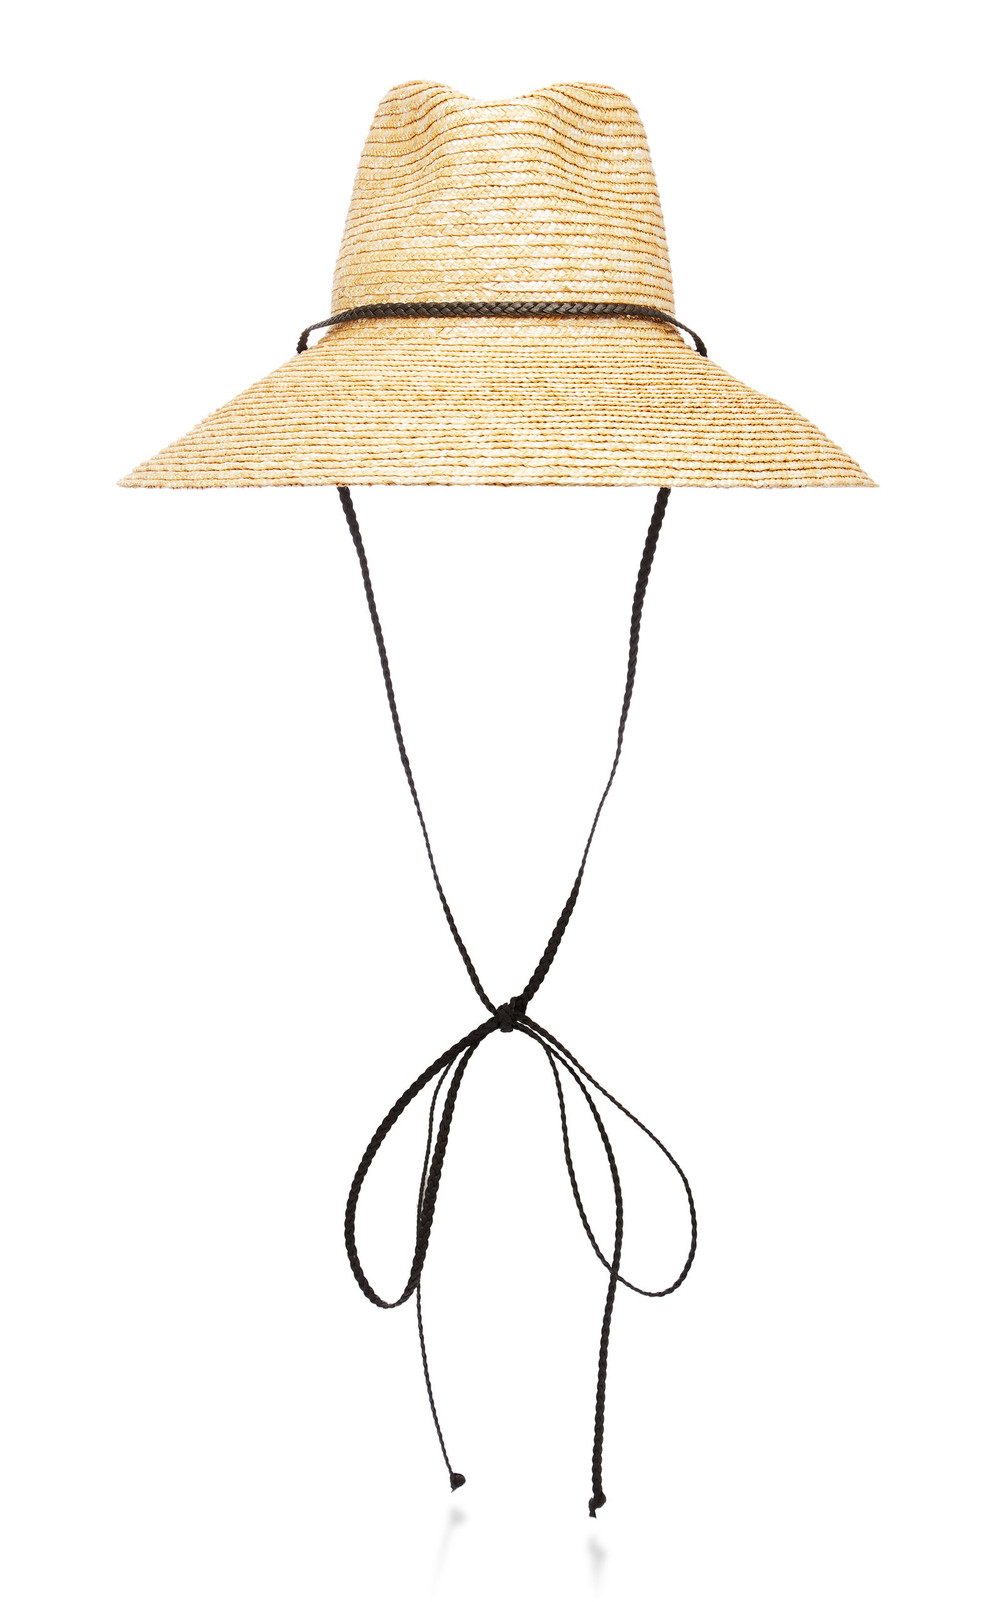 Filu Hats Lifeguard Rope-Trimmed Straw Hat in neutral